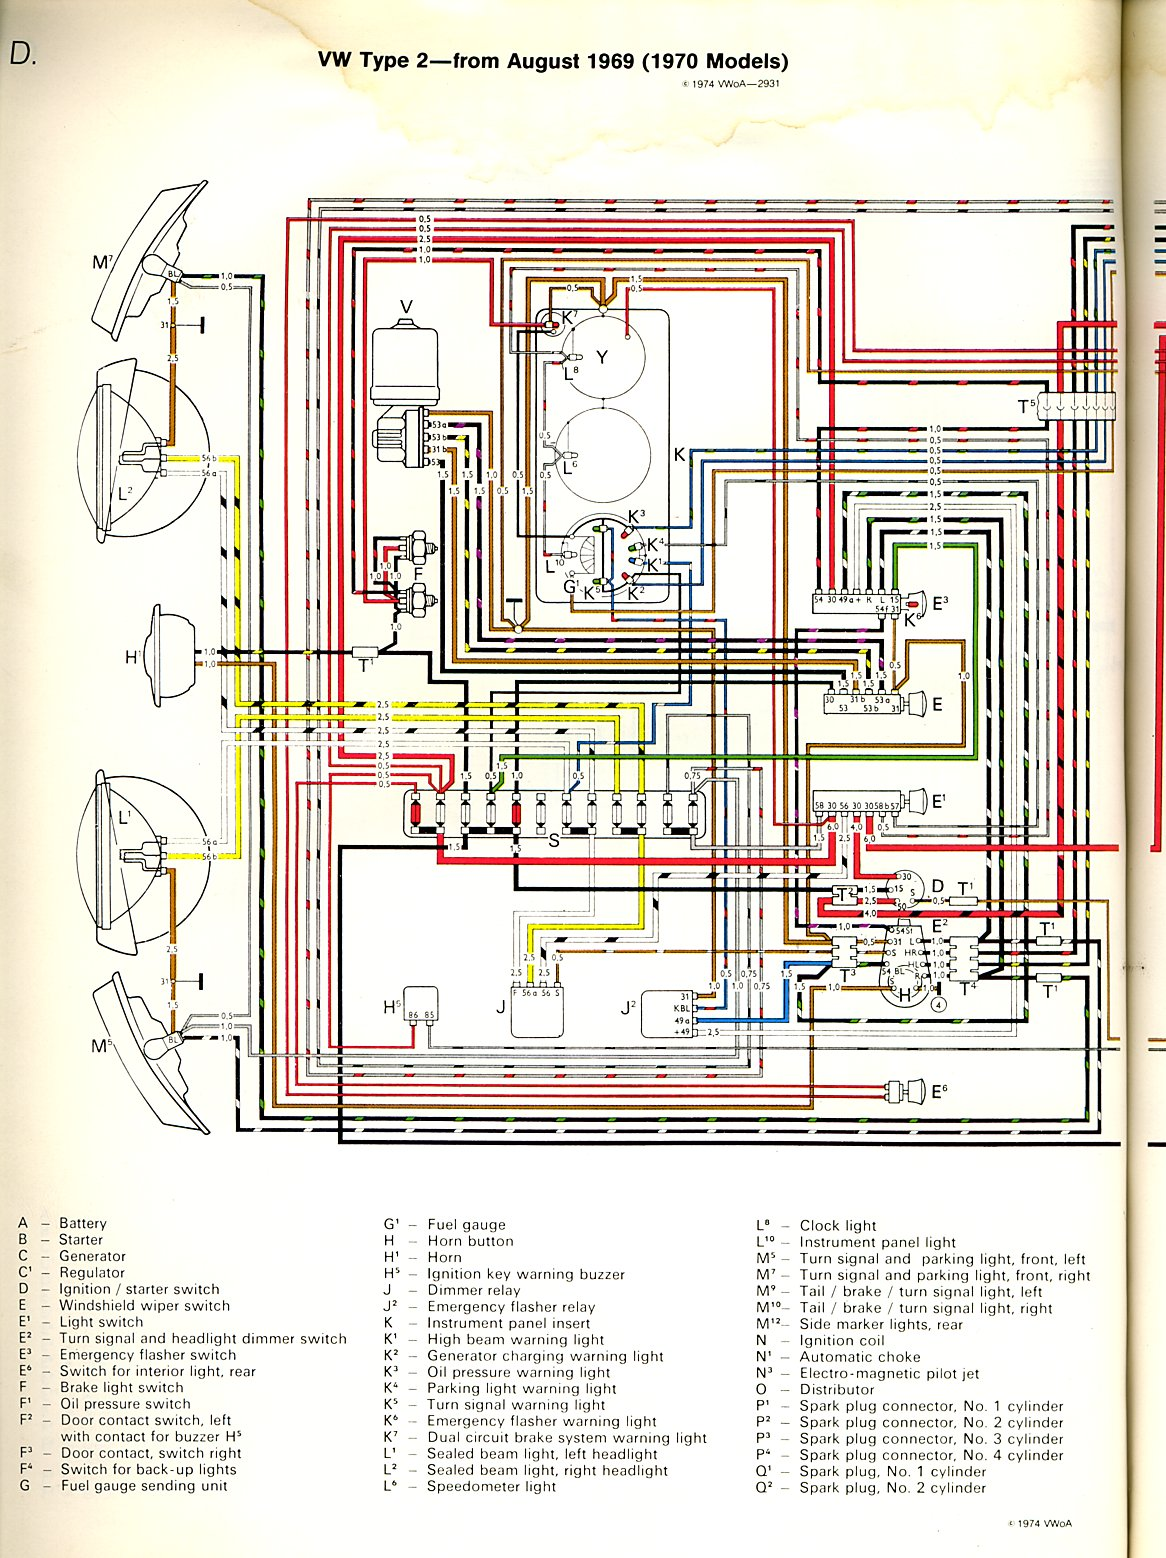 baybus_70a bus wiring diagram vw wiring harness diagram \u2022 wiring diagrams j  at mifinder.co